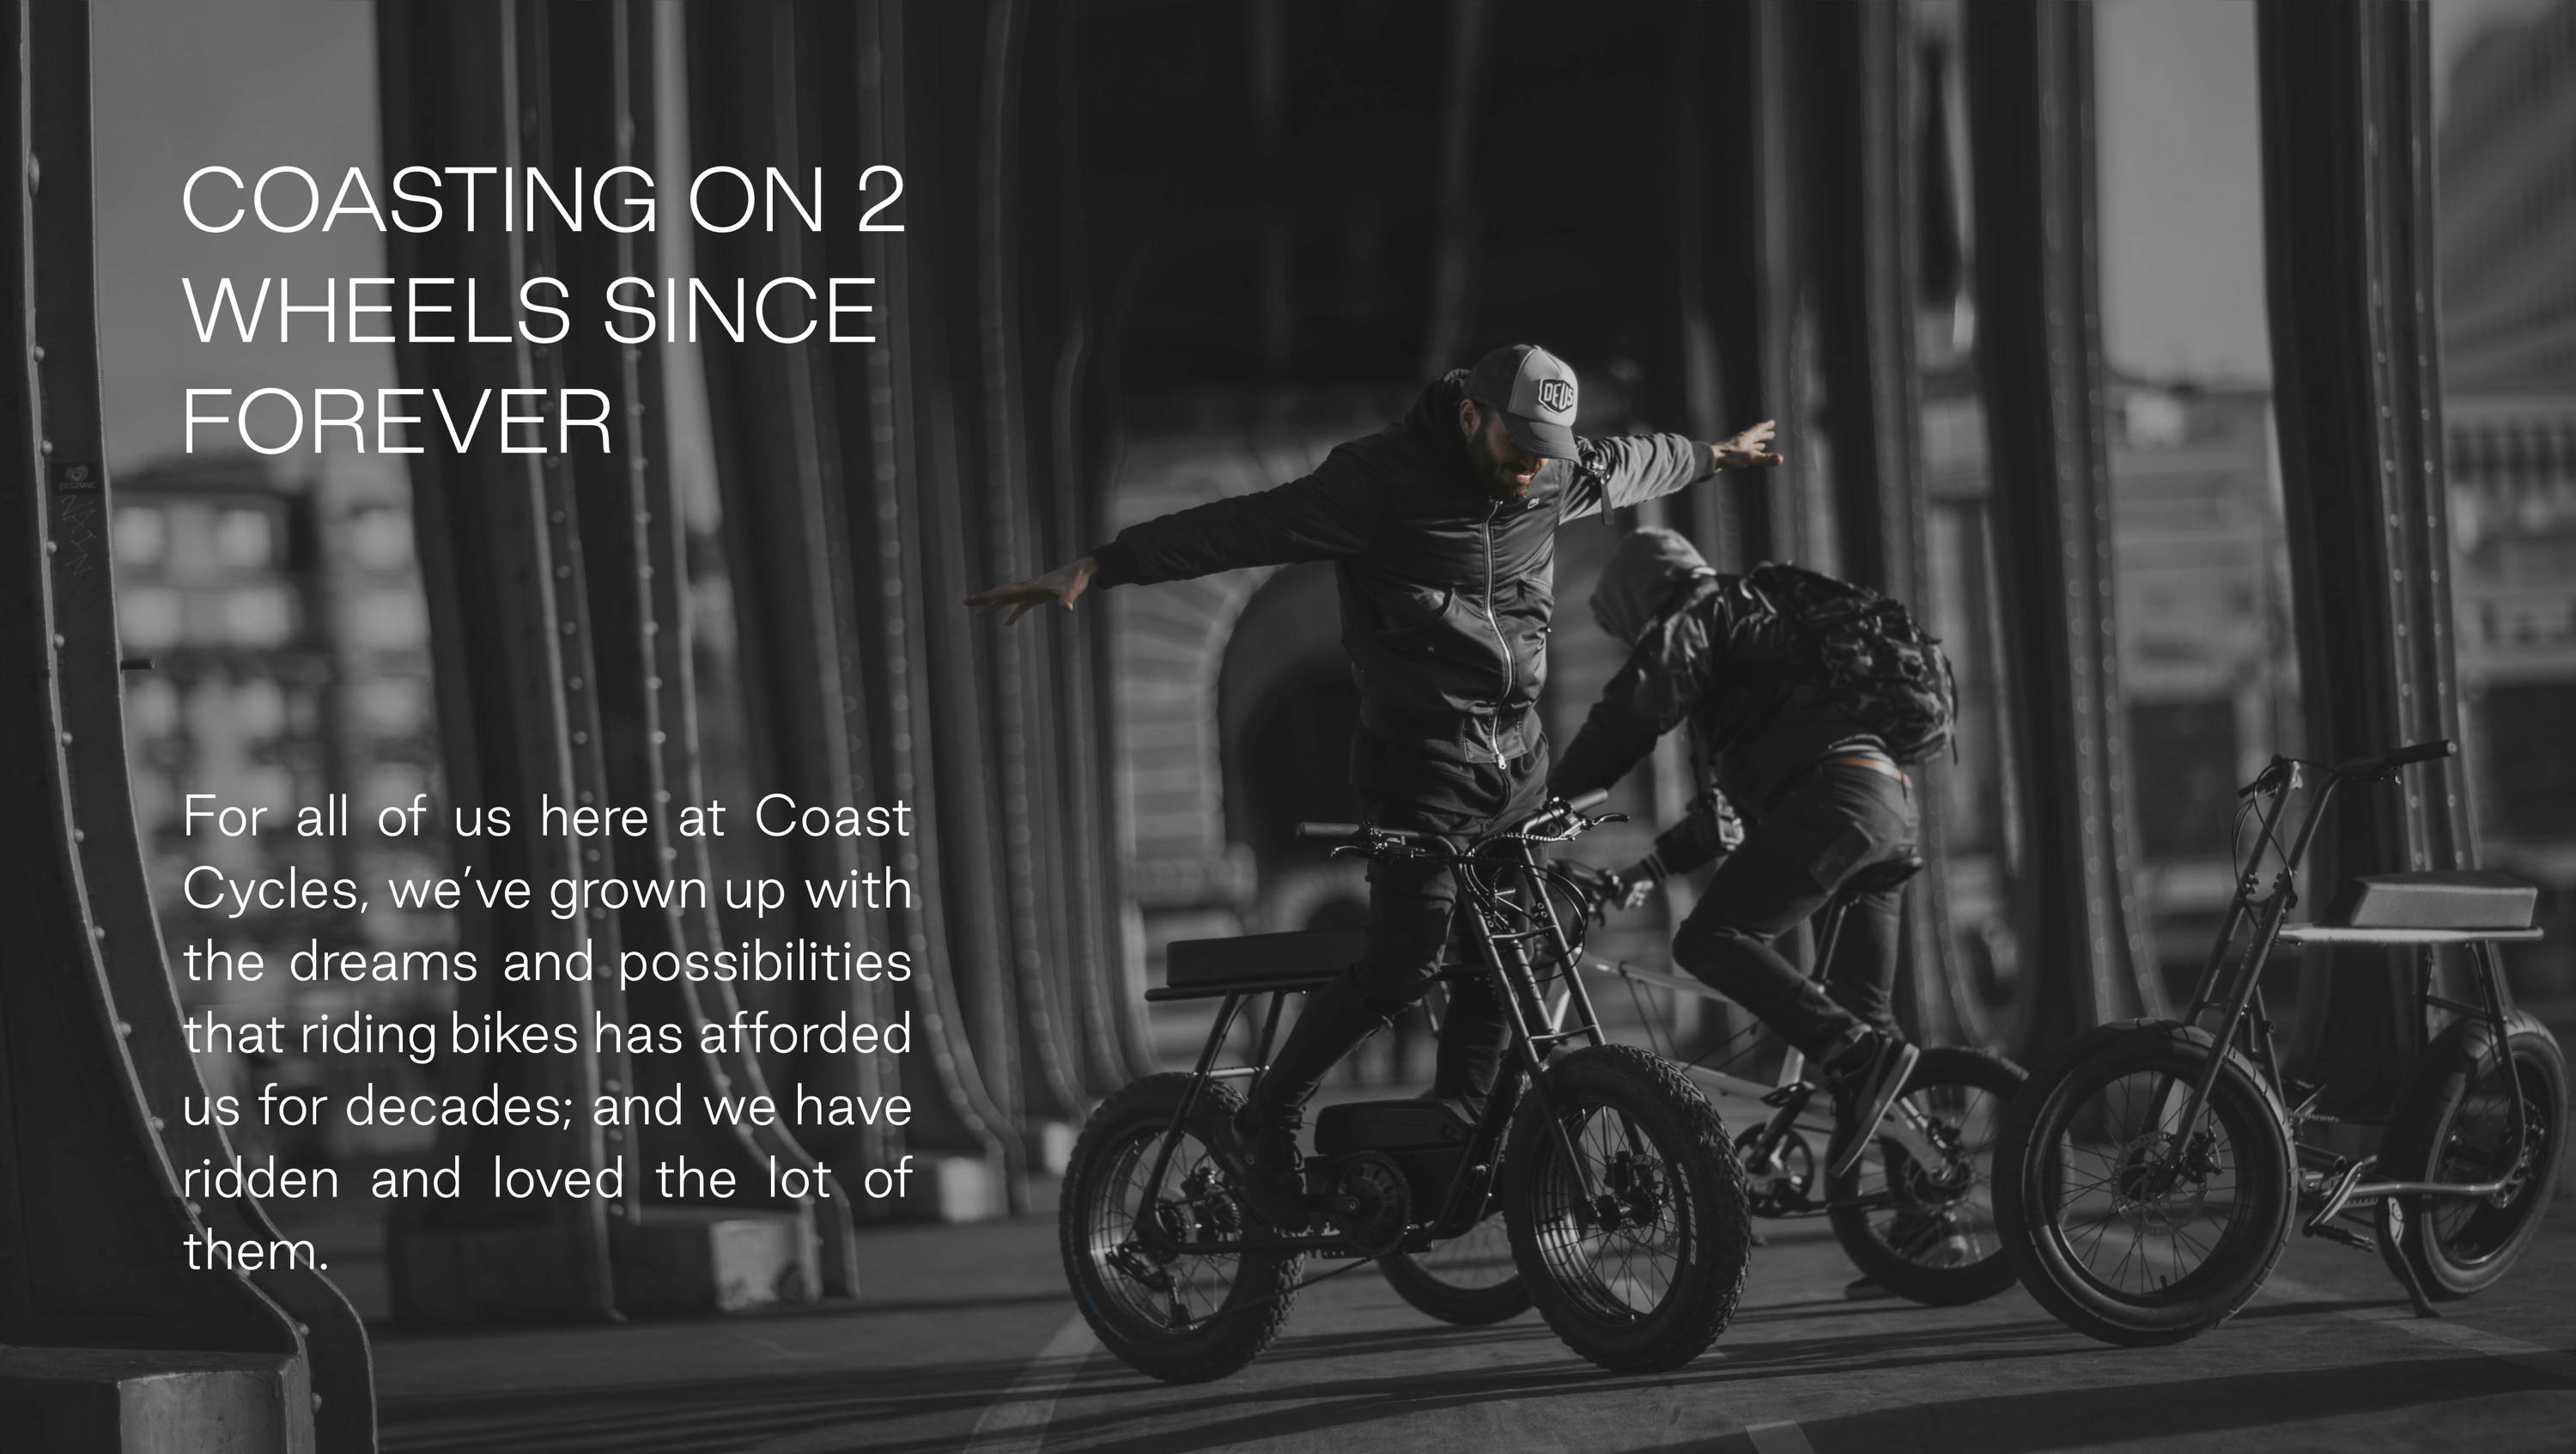 For all of us here at Coast Cycles, we've grown up with the dreams and possibilities that riding bikes has afforded us for decades; and we have ridden and loved the lot of them.